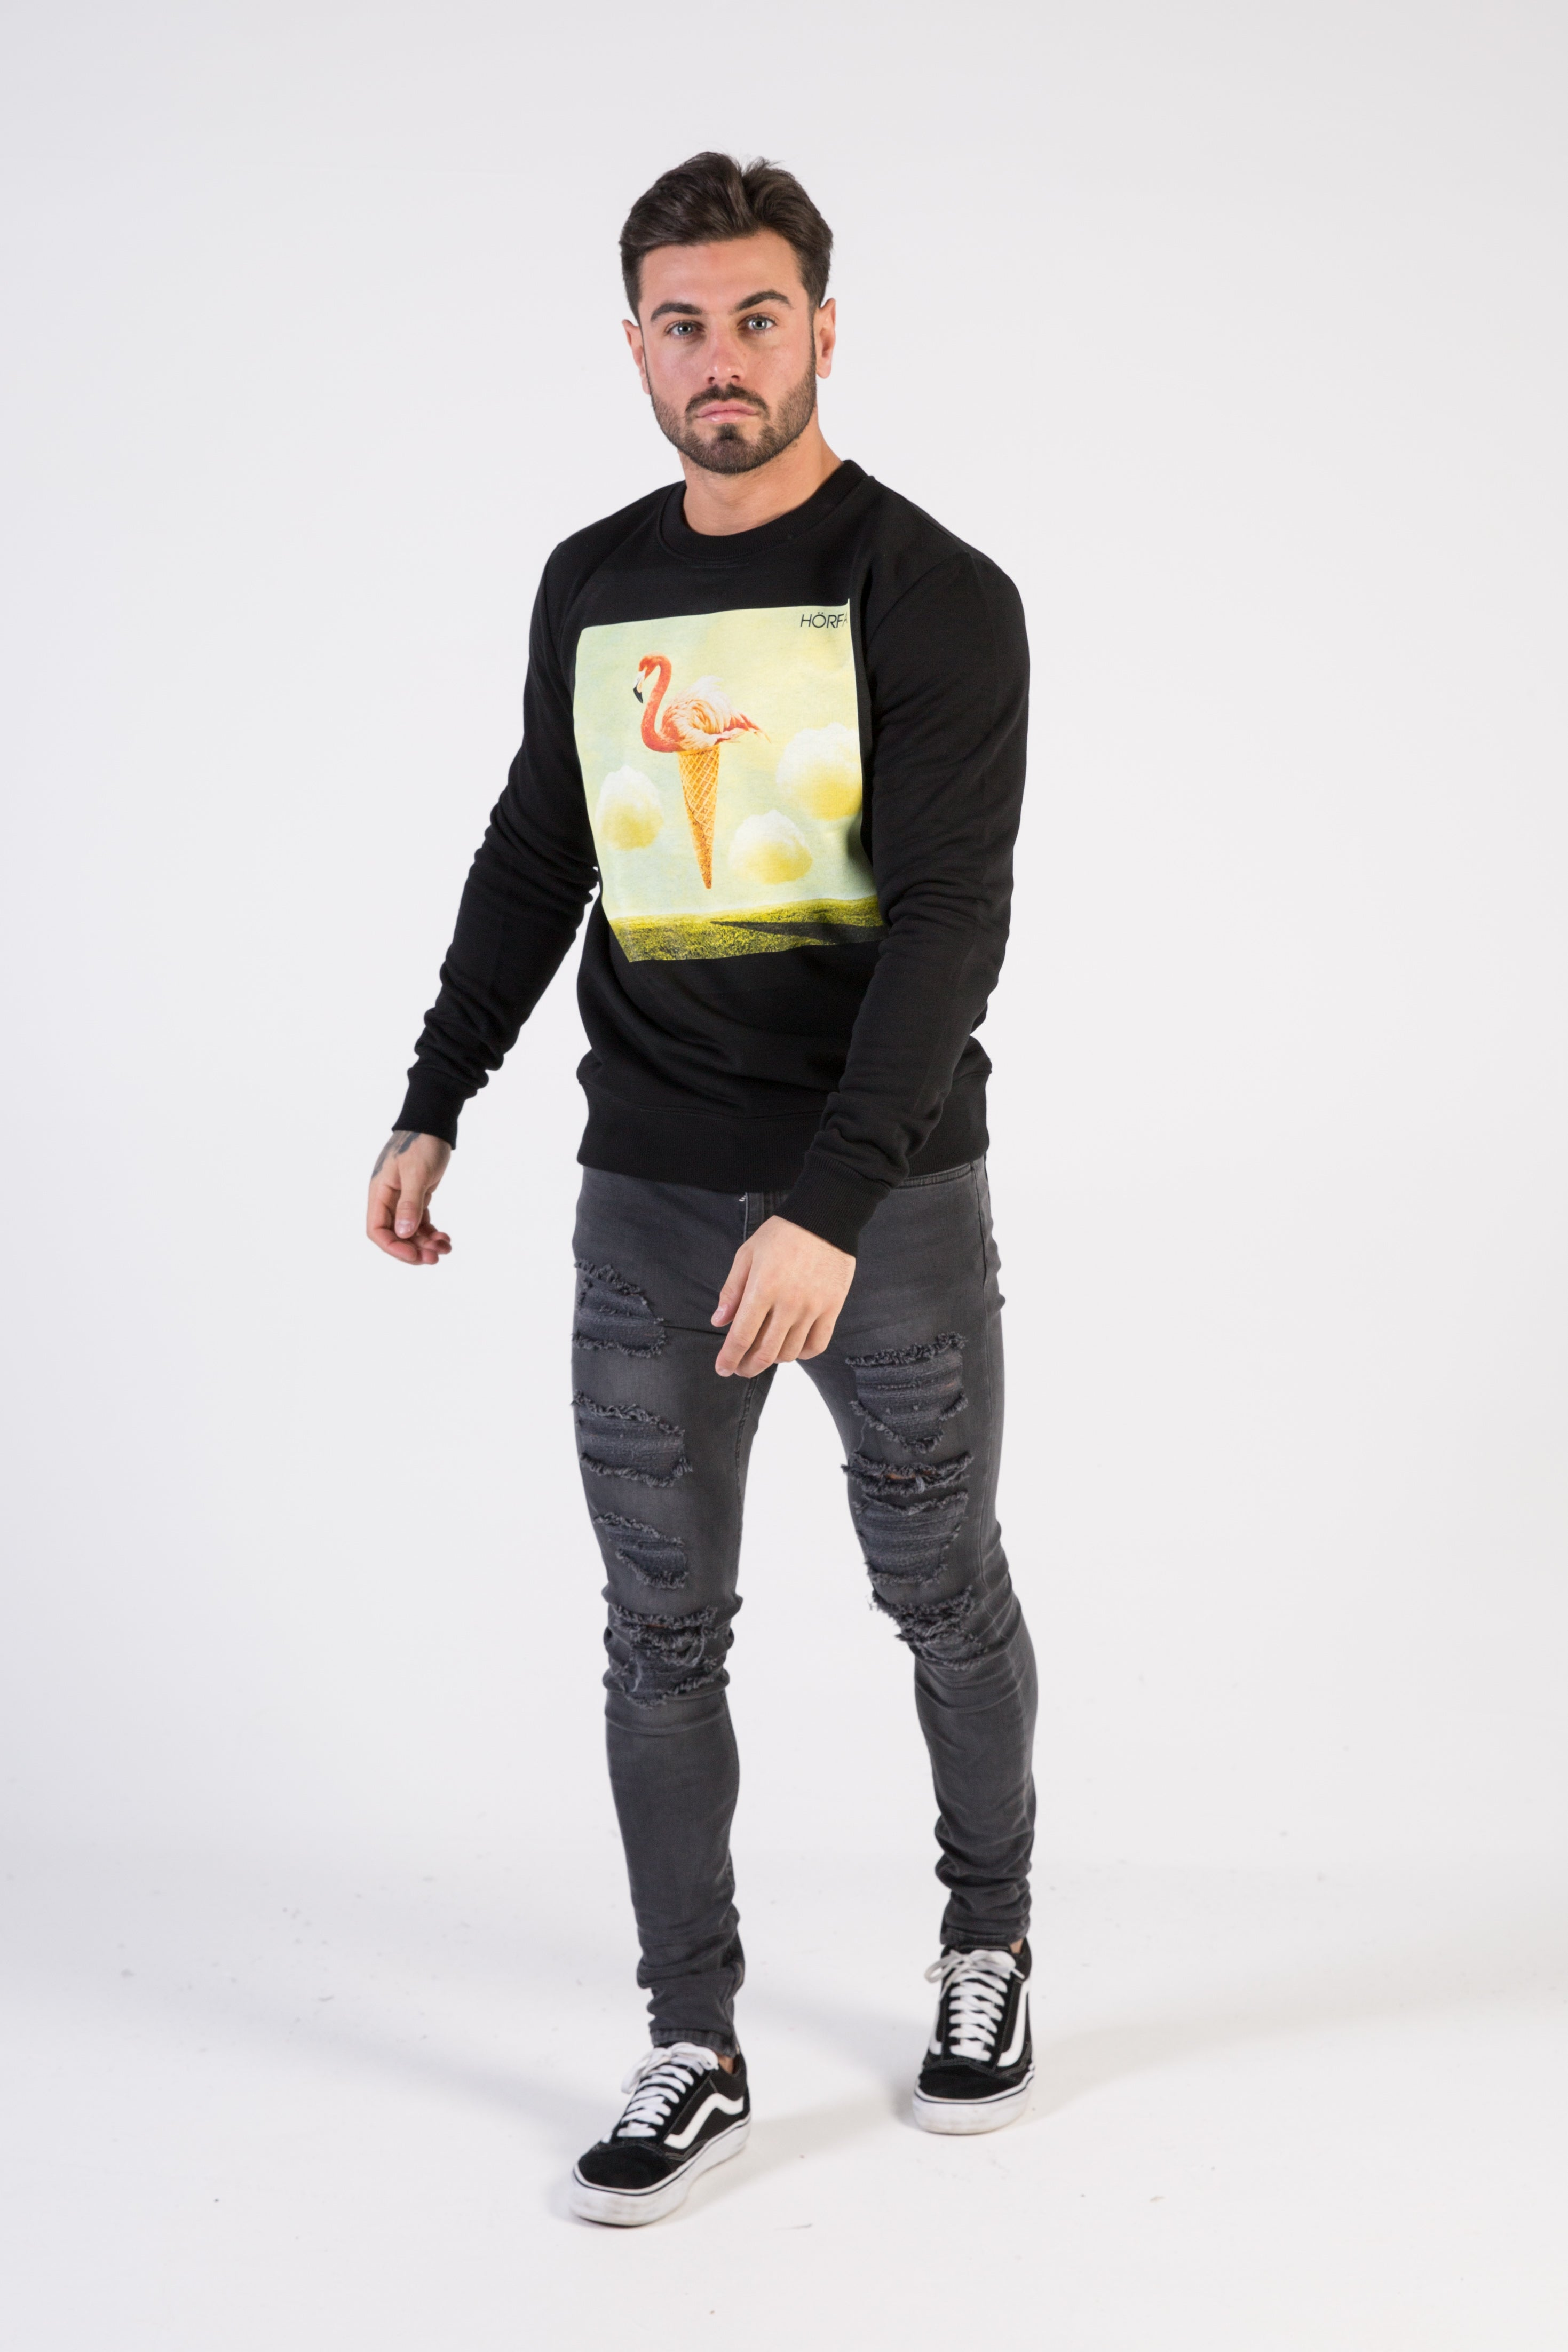 FLAMINGO Sweatshirt - HÖRFA is a men's global fashion brand that provides products such as Fashionable Watches, Wallets, Sunglasses, Belts, Beard and Male Grooming Products